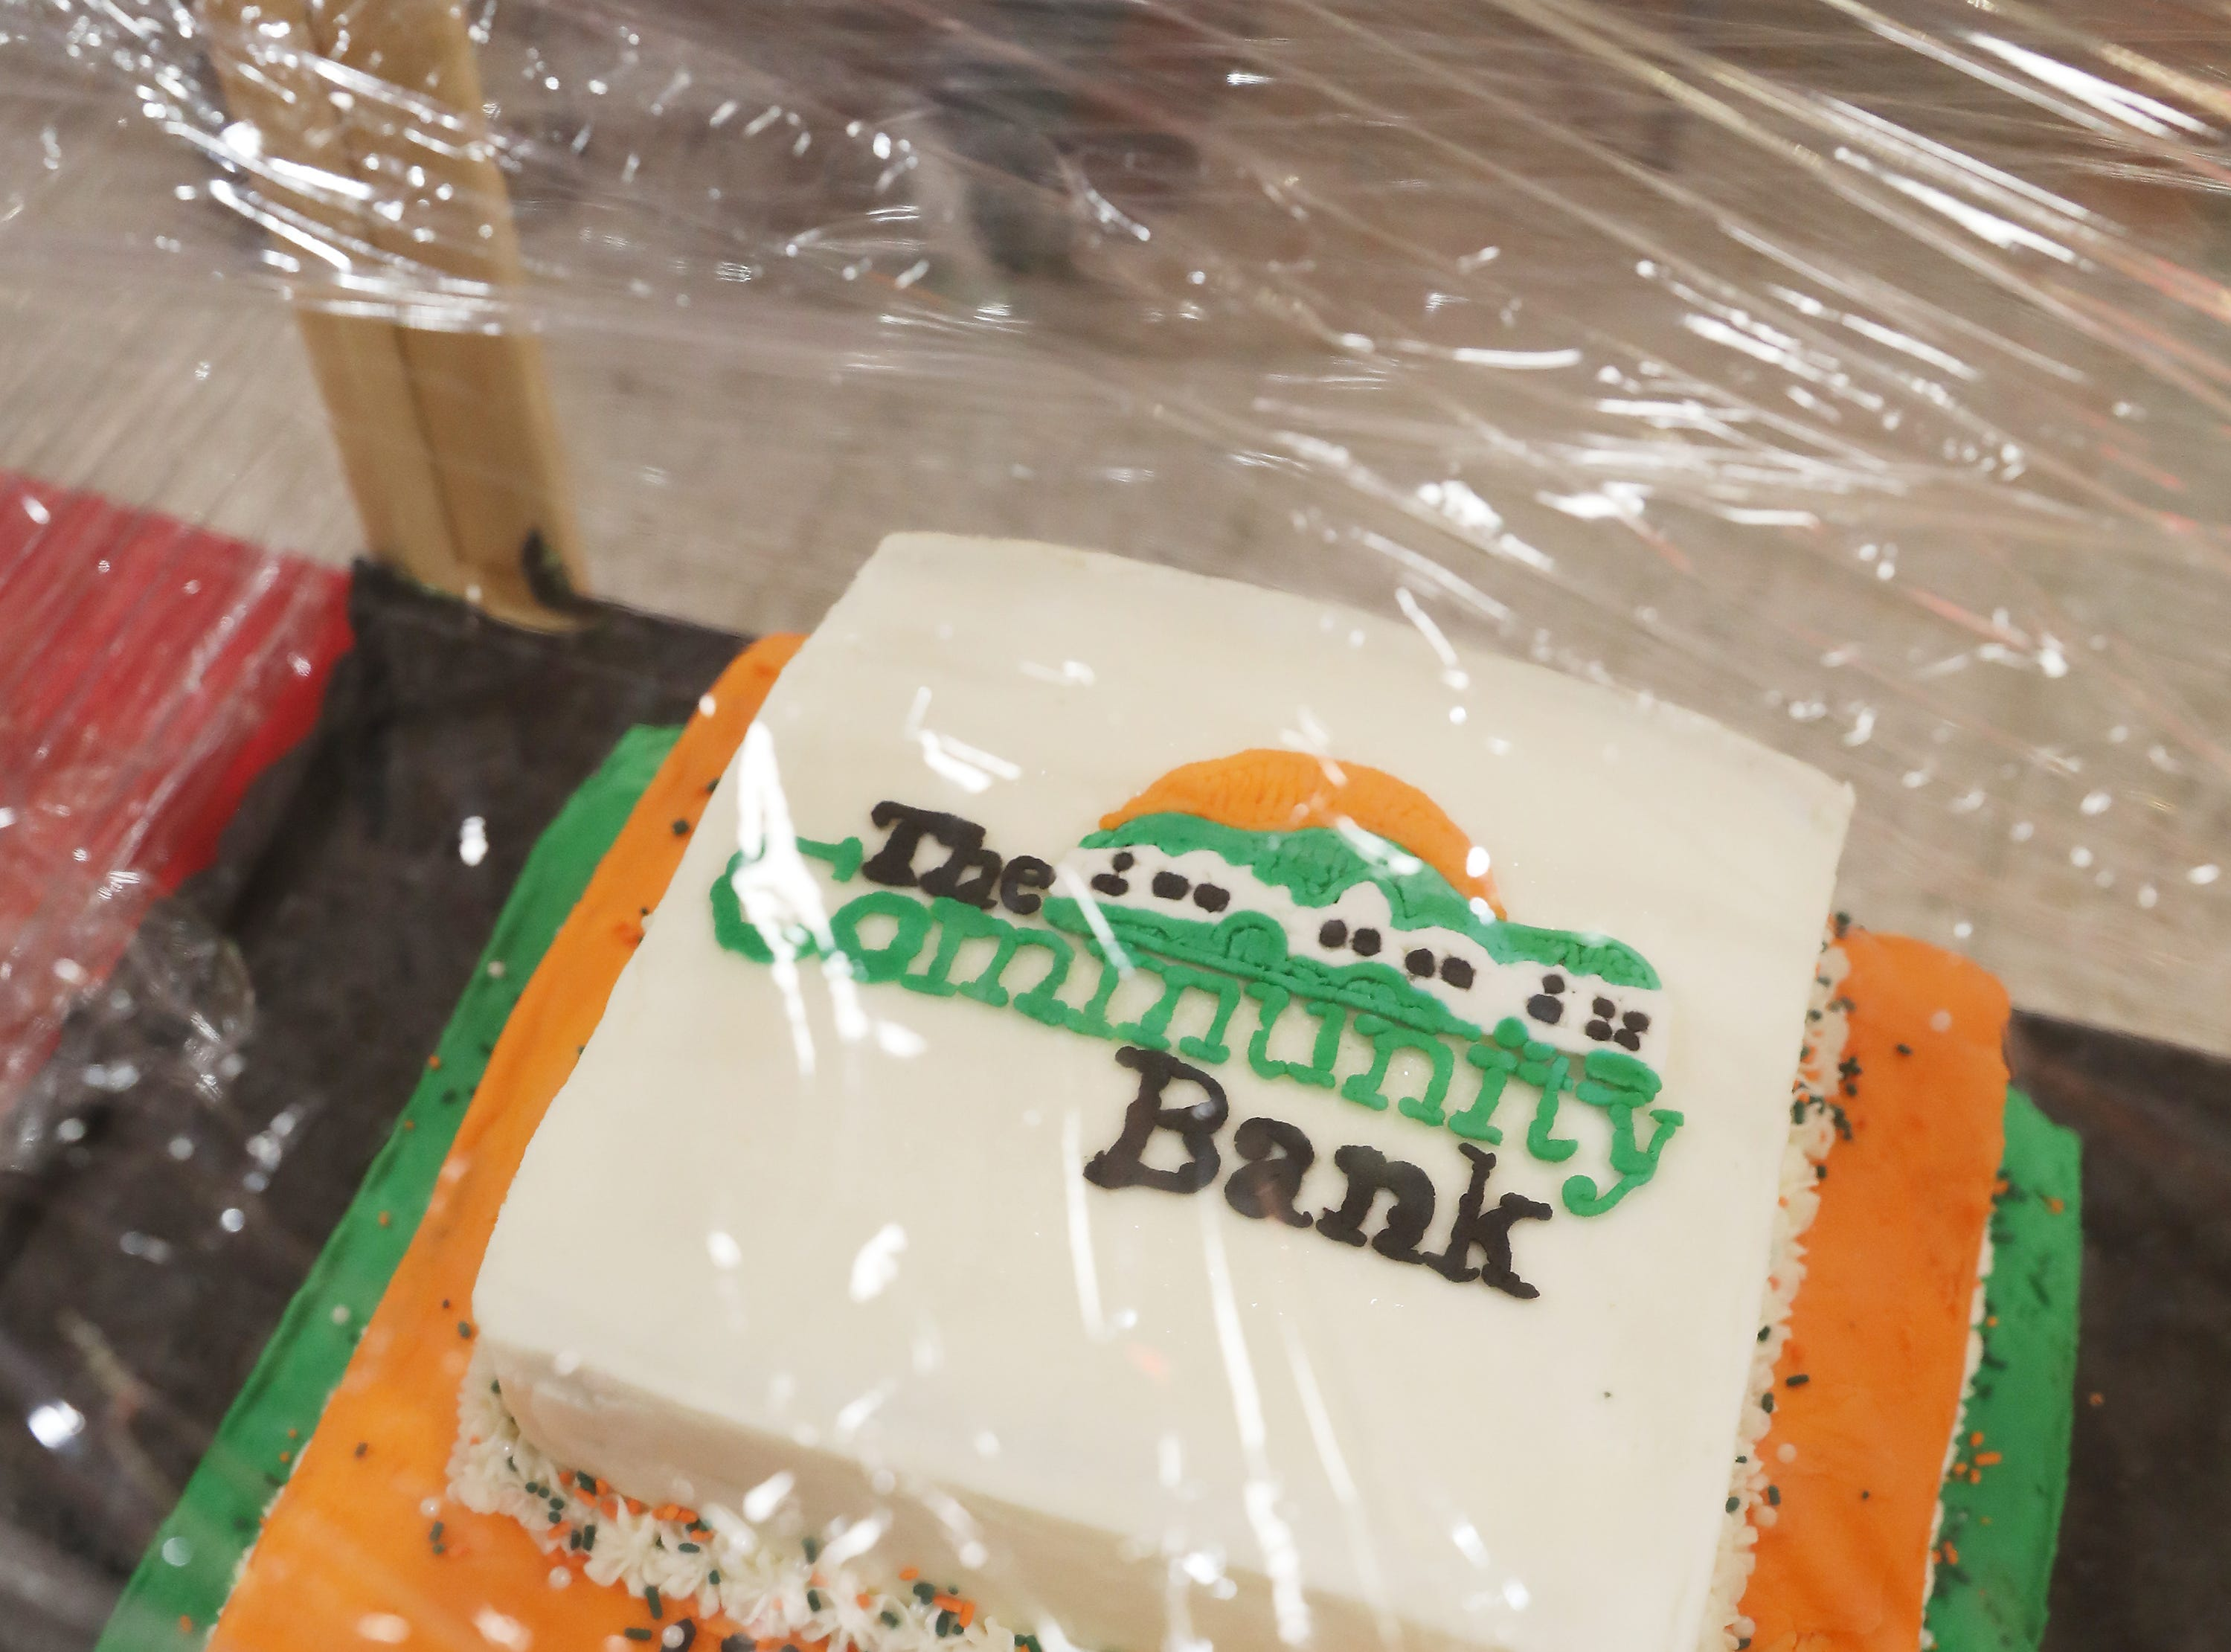 5 P.M. Friday cake 397 The Community Bank - Pedal Wagon Columbus gift card, riders must be at least 21, alcohol not provided; $419